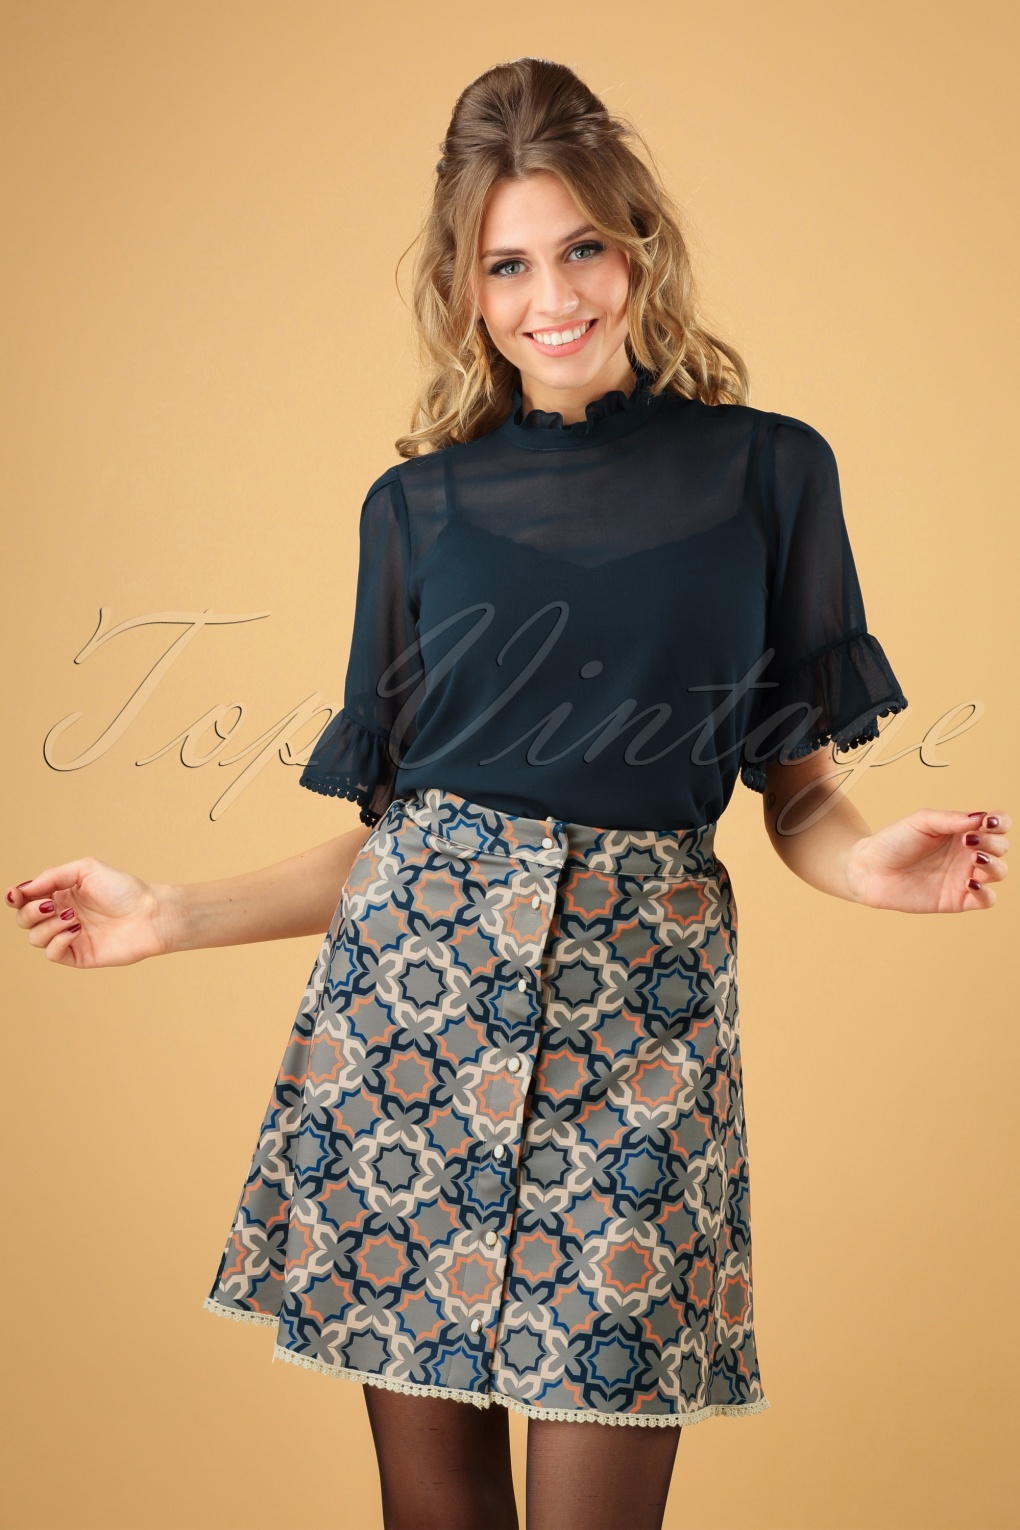 Waisted High skirt lauren conrad pictures